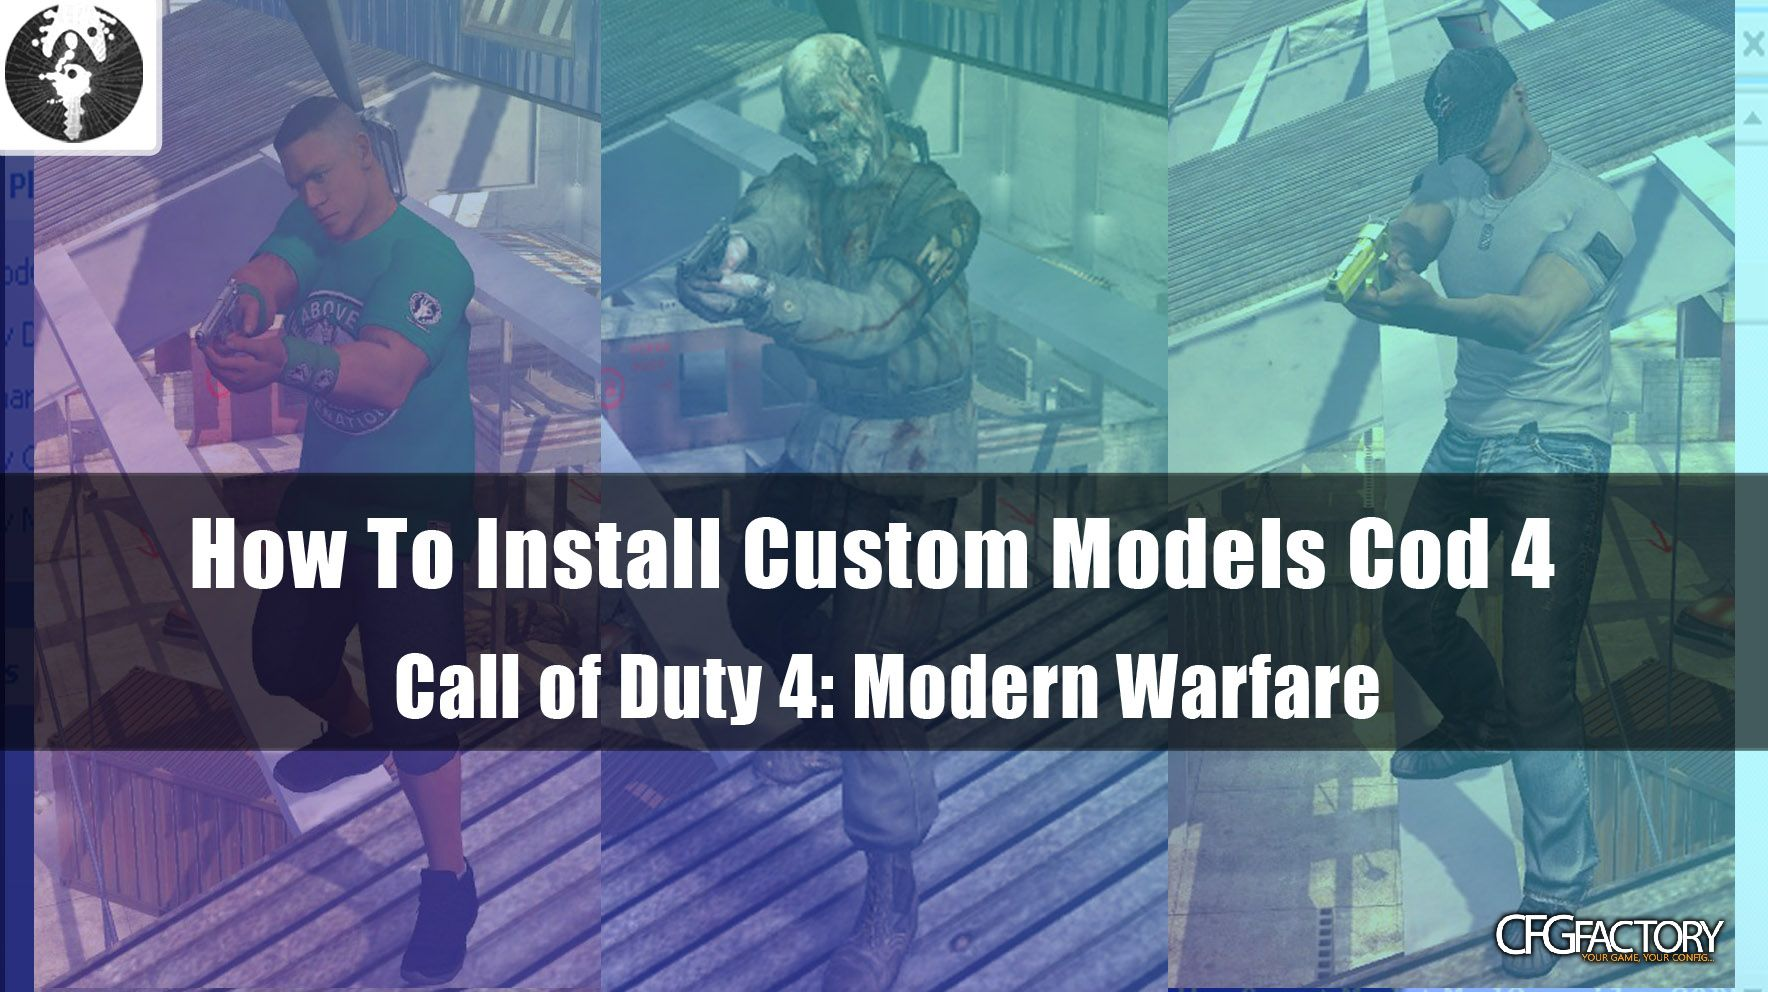 cod4, custom models, how to install custom models, snakey